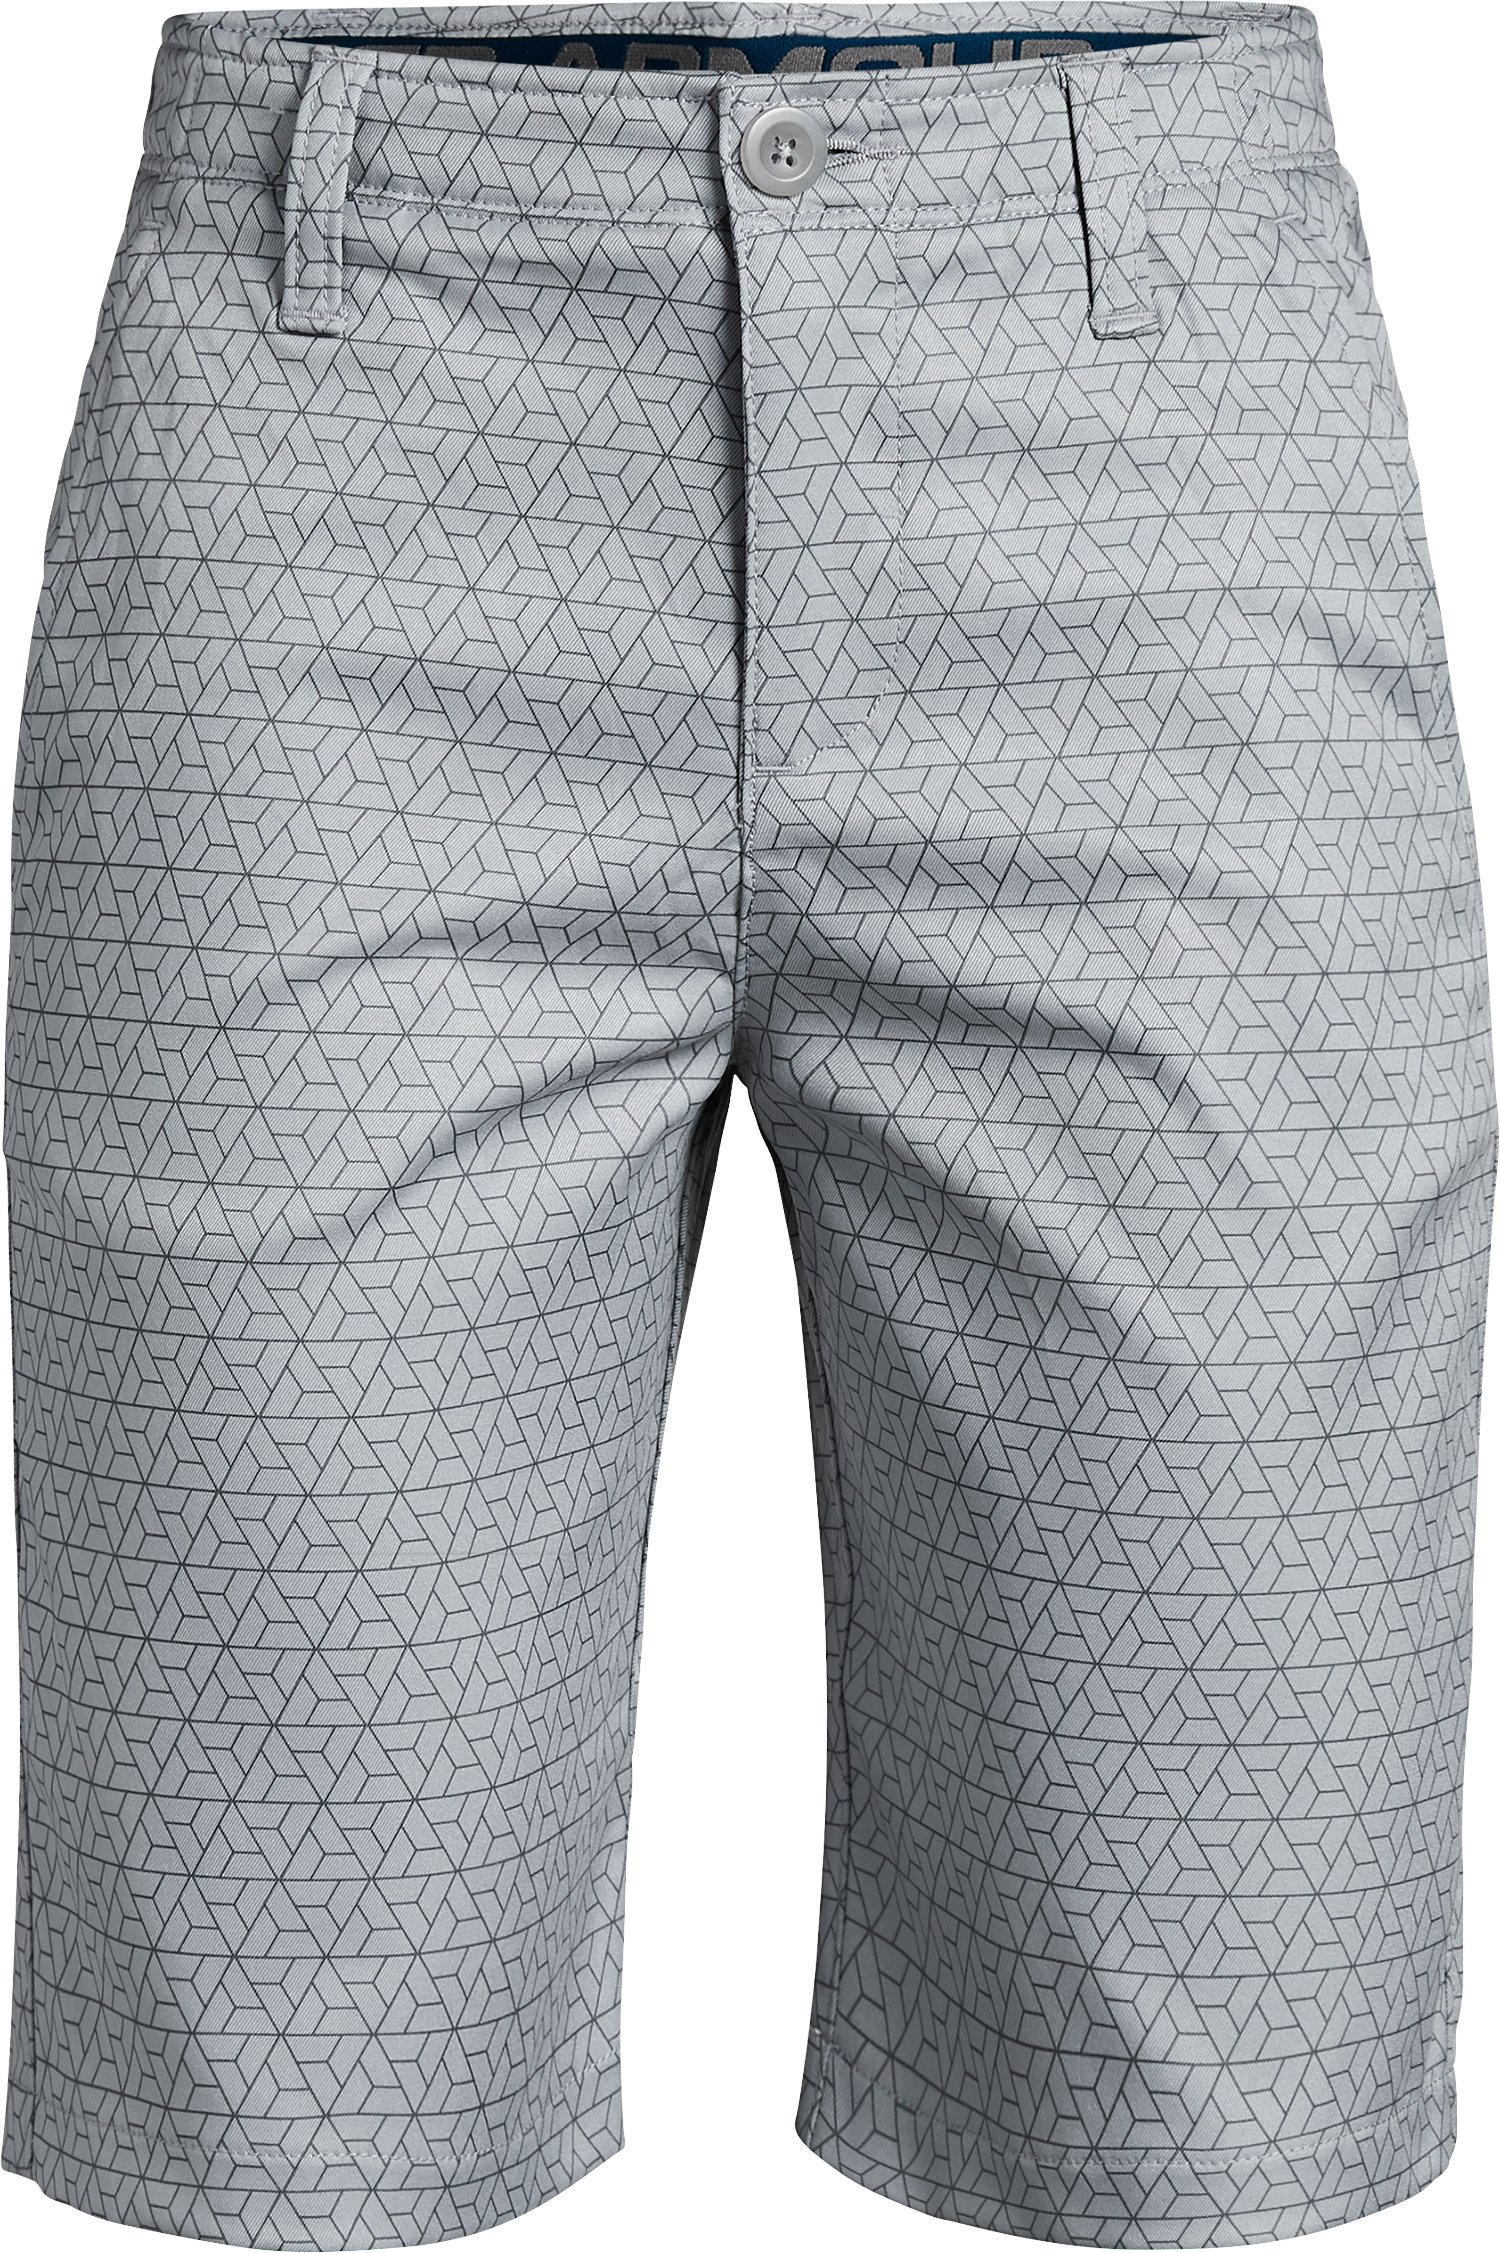 Boys' UA Match Play Printed Shorts, Steel